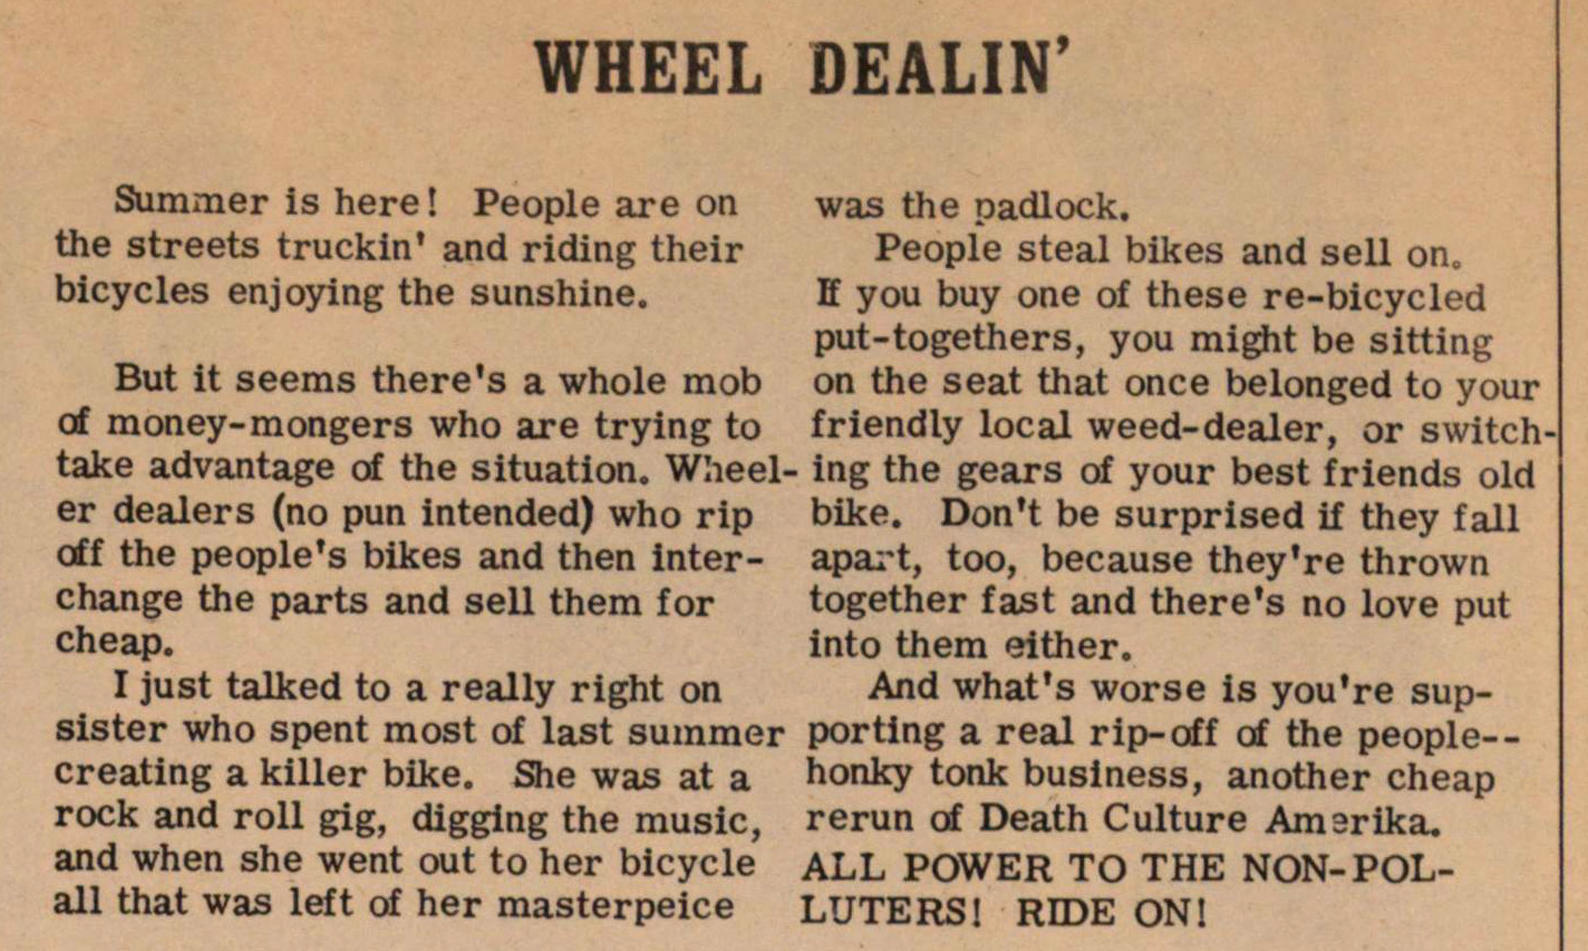 Wheel Dealin' image